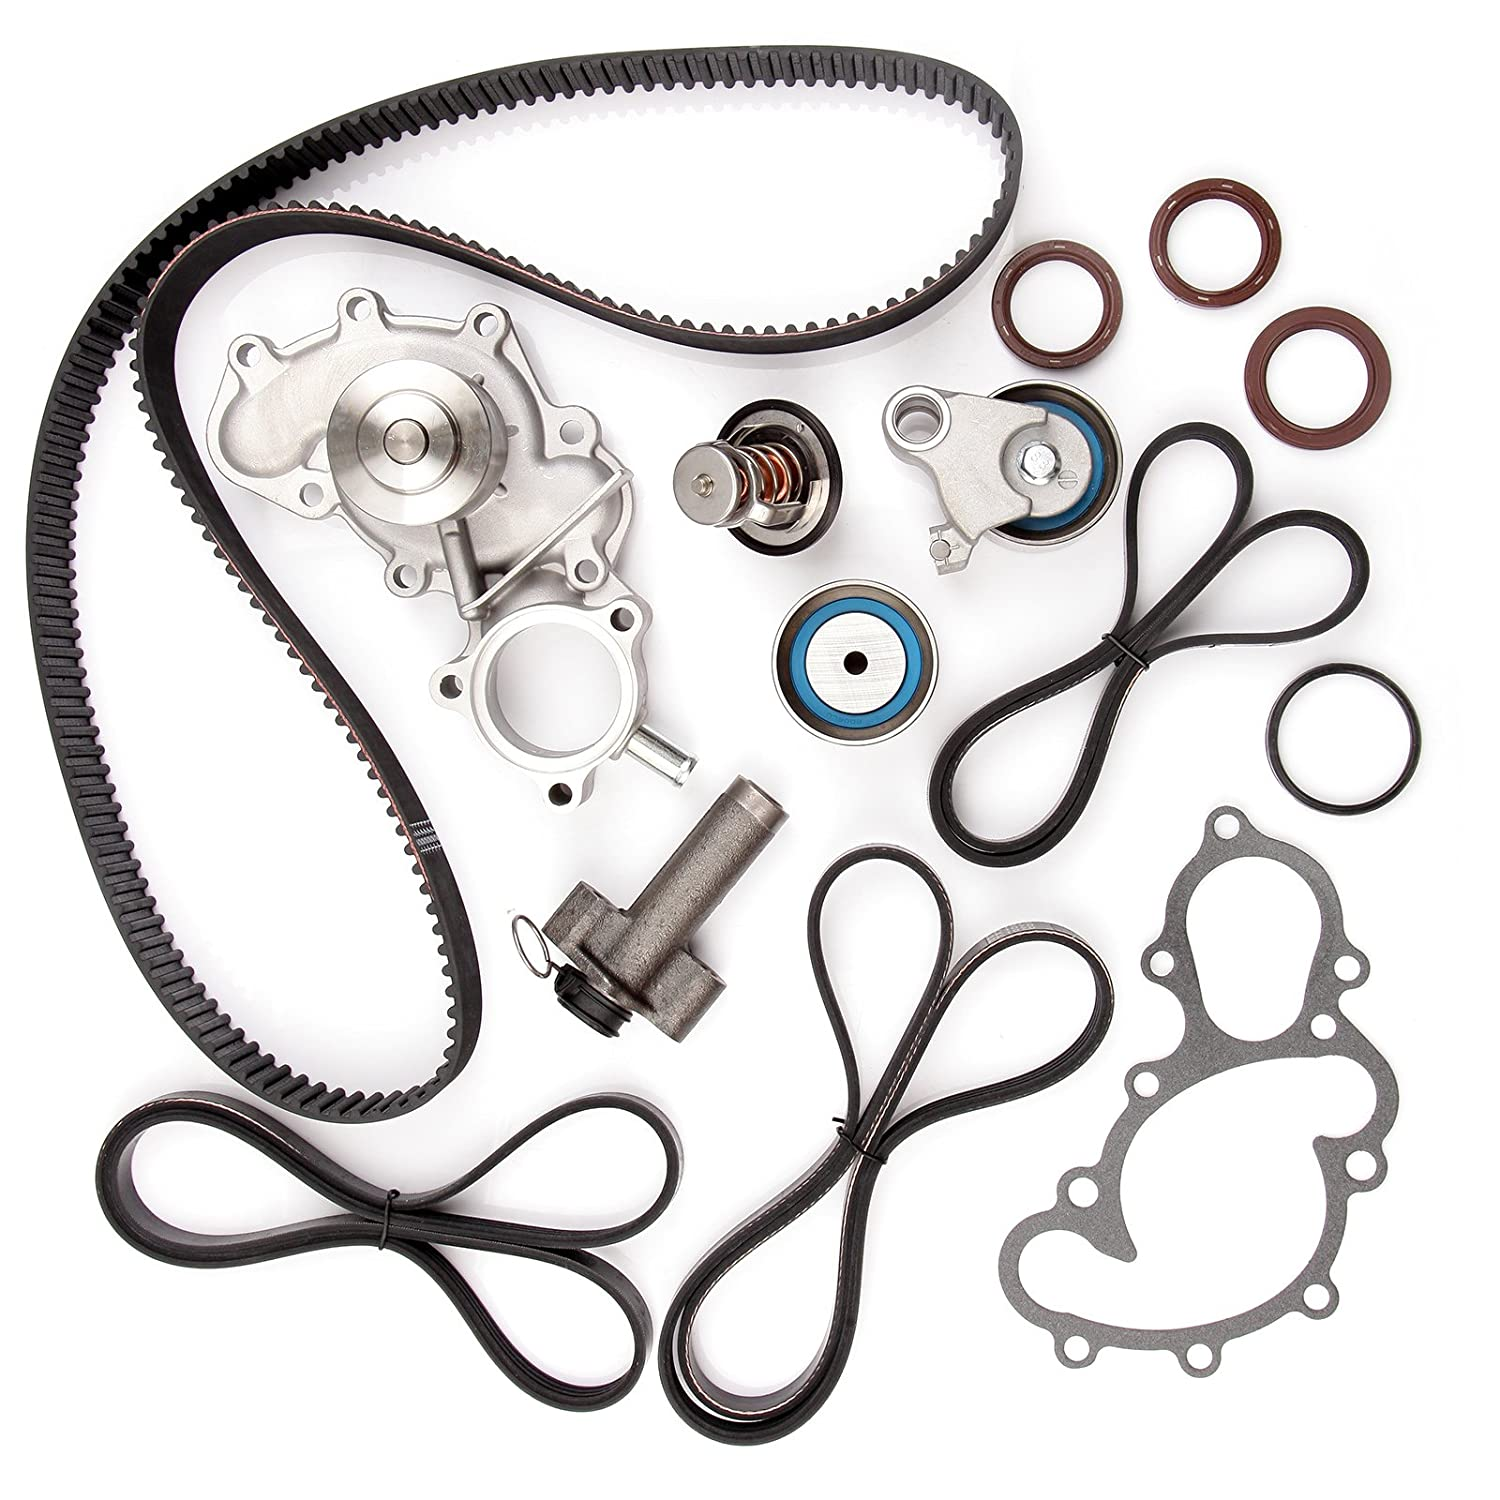 amazon timing belt water pump kit eccpp for 1995 2004 toyota  amazon timing belt water pump kit eccpp for 1995 2004 toyota ta a tundra 4runner t100 3 4l v6 dohc 24 valve engine 5vzfe automotive